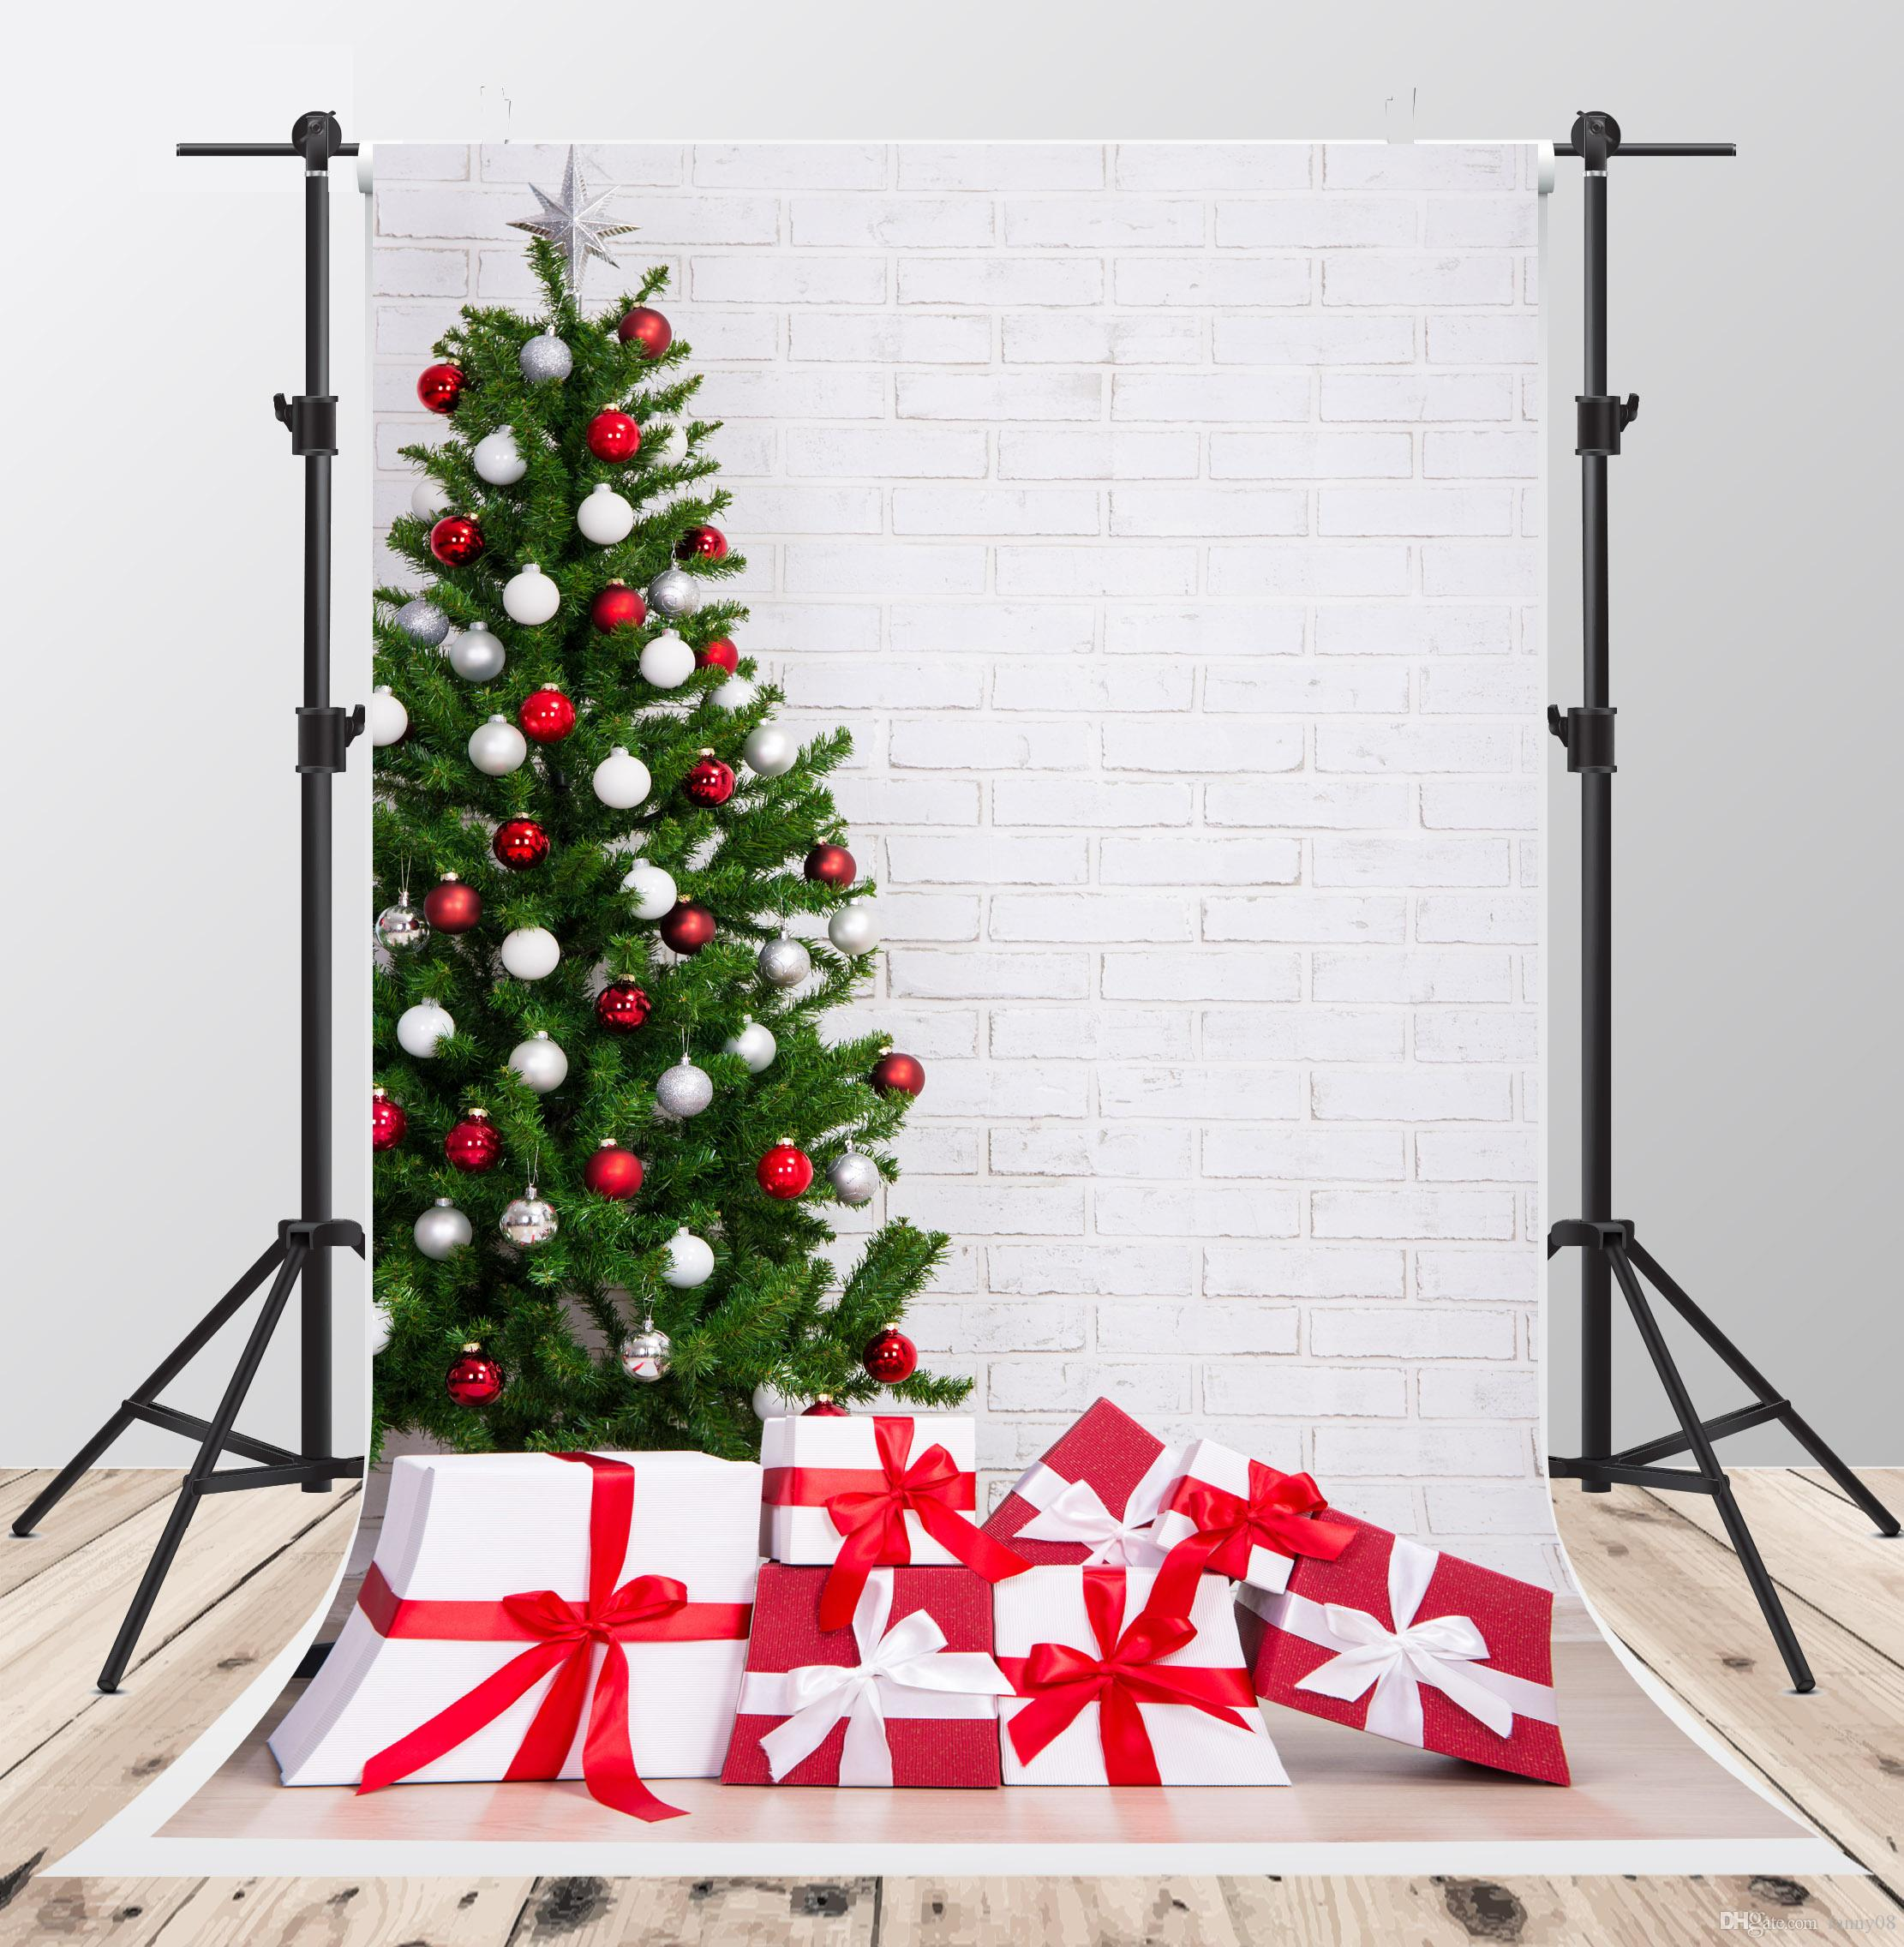 2019 Christmas Backgrounds For Photo Studio 5x7ft ...